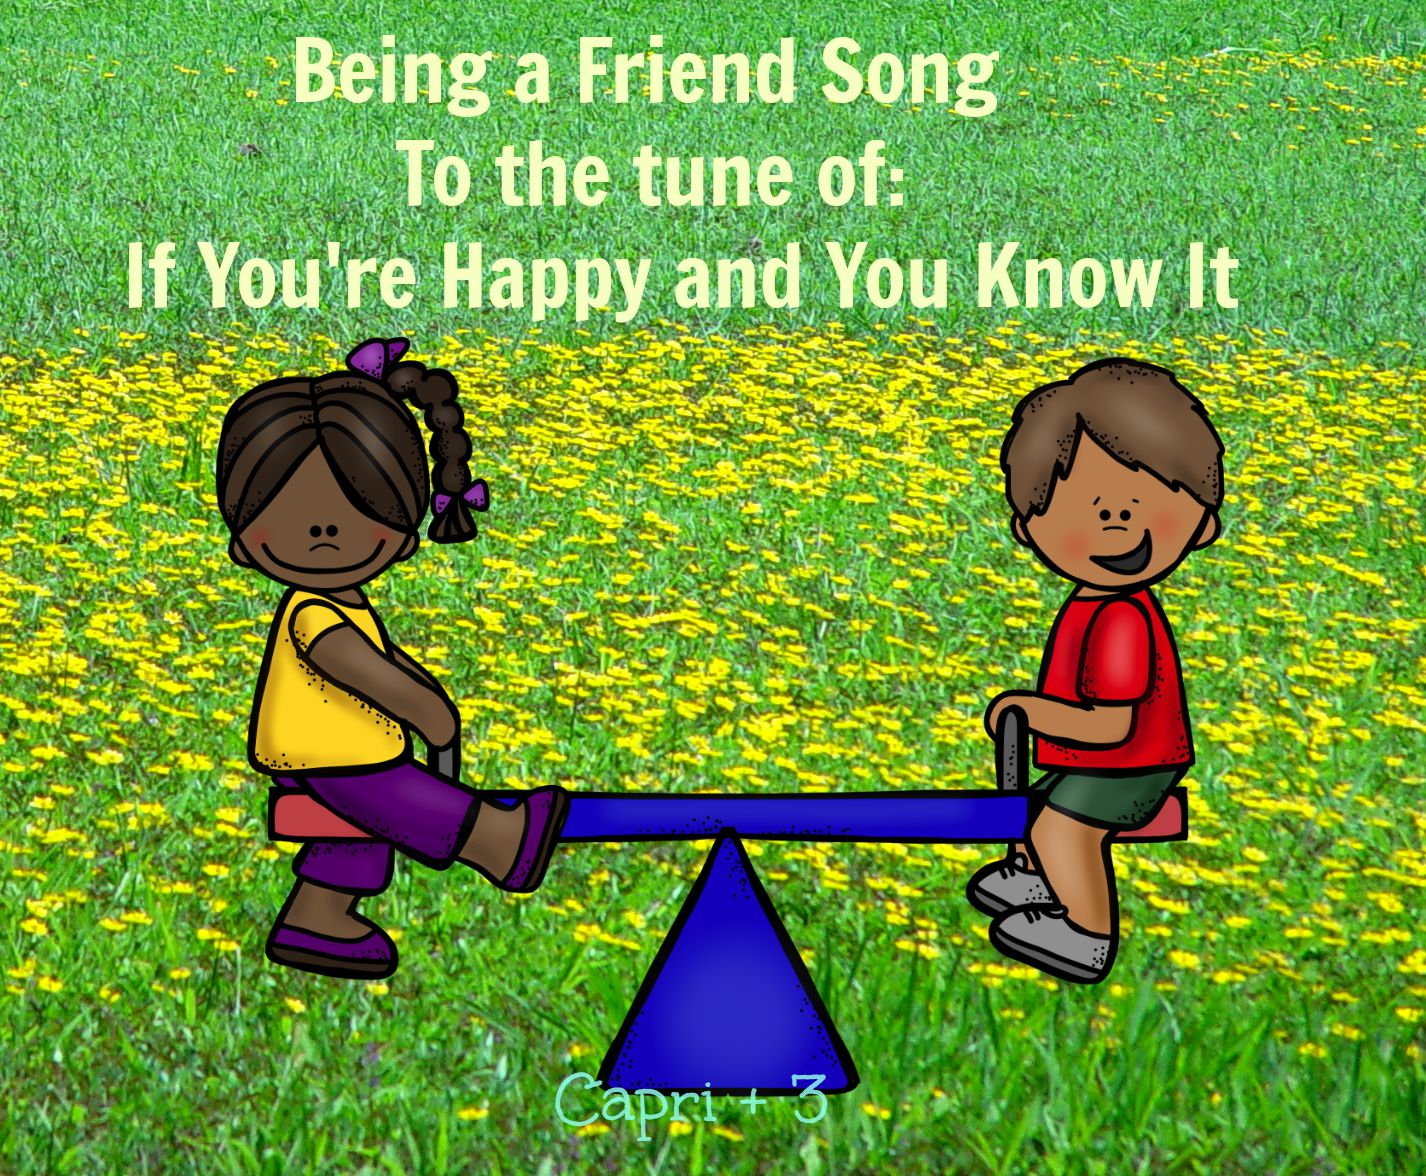 HALLIE: Christian songs about friendship